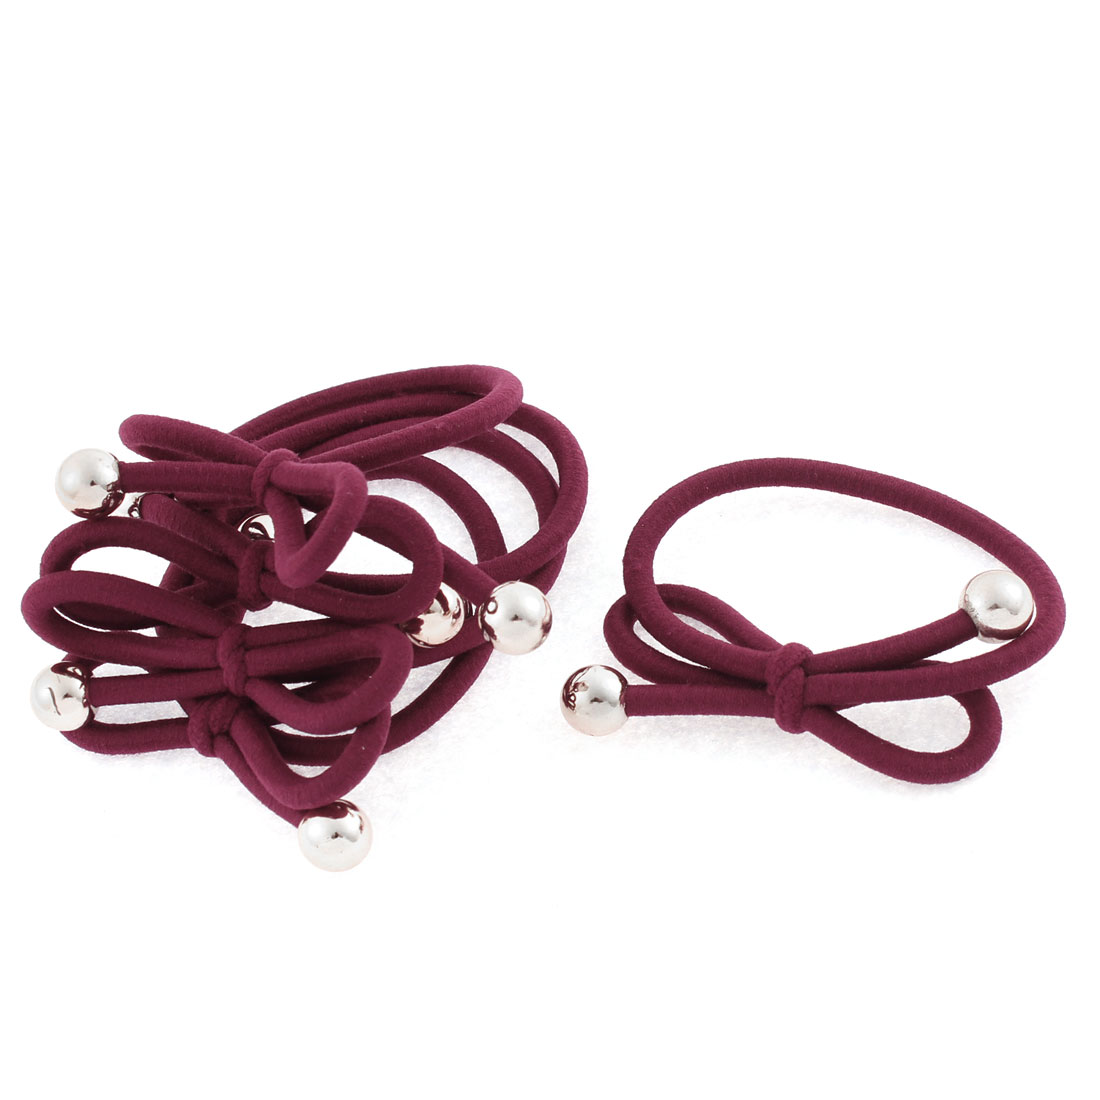 Unique Bargains 5 Pcs Burgundy Faux Pearl Decor Bow-Knot Elastic Rubber Hair Ties Bands Ponytail